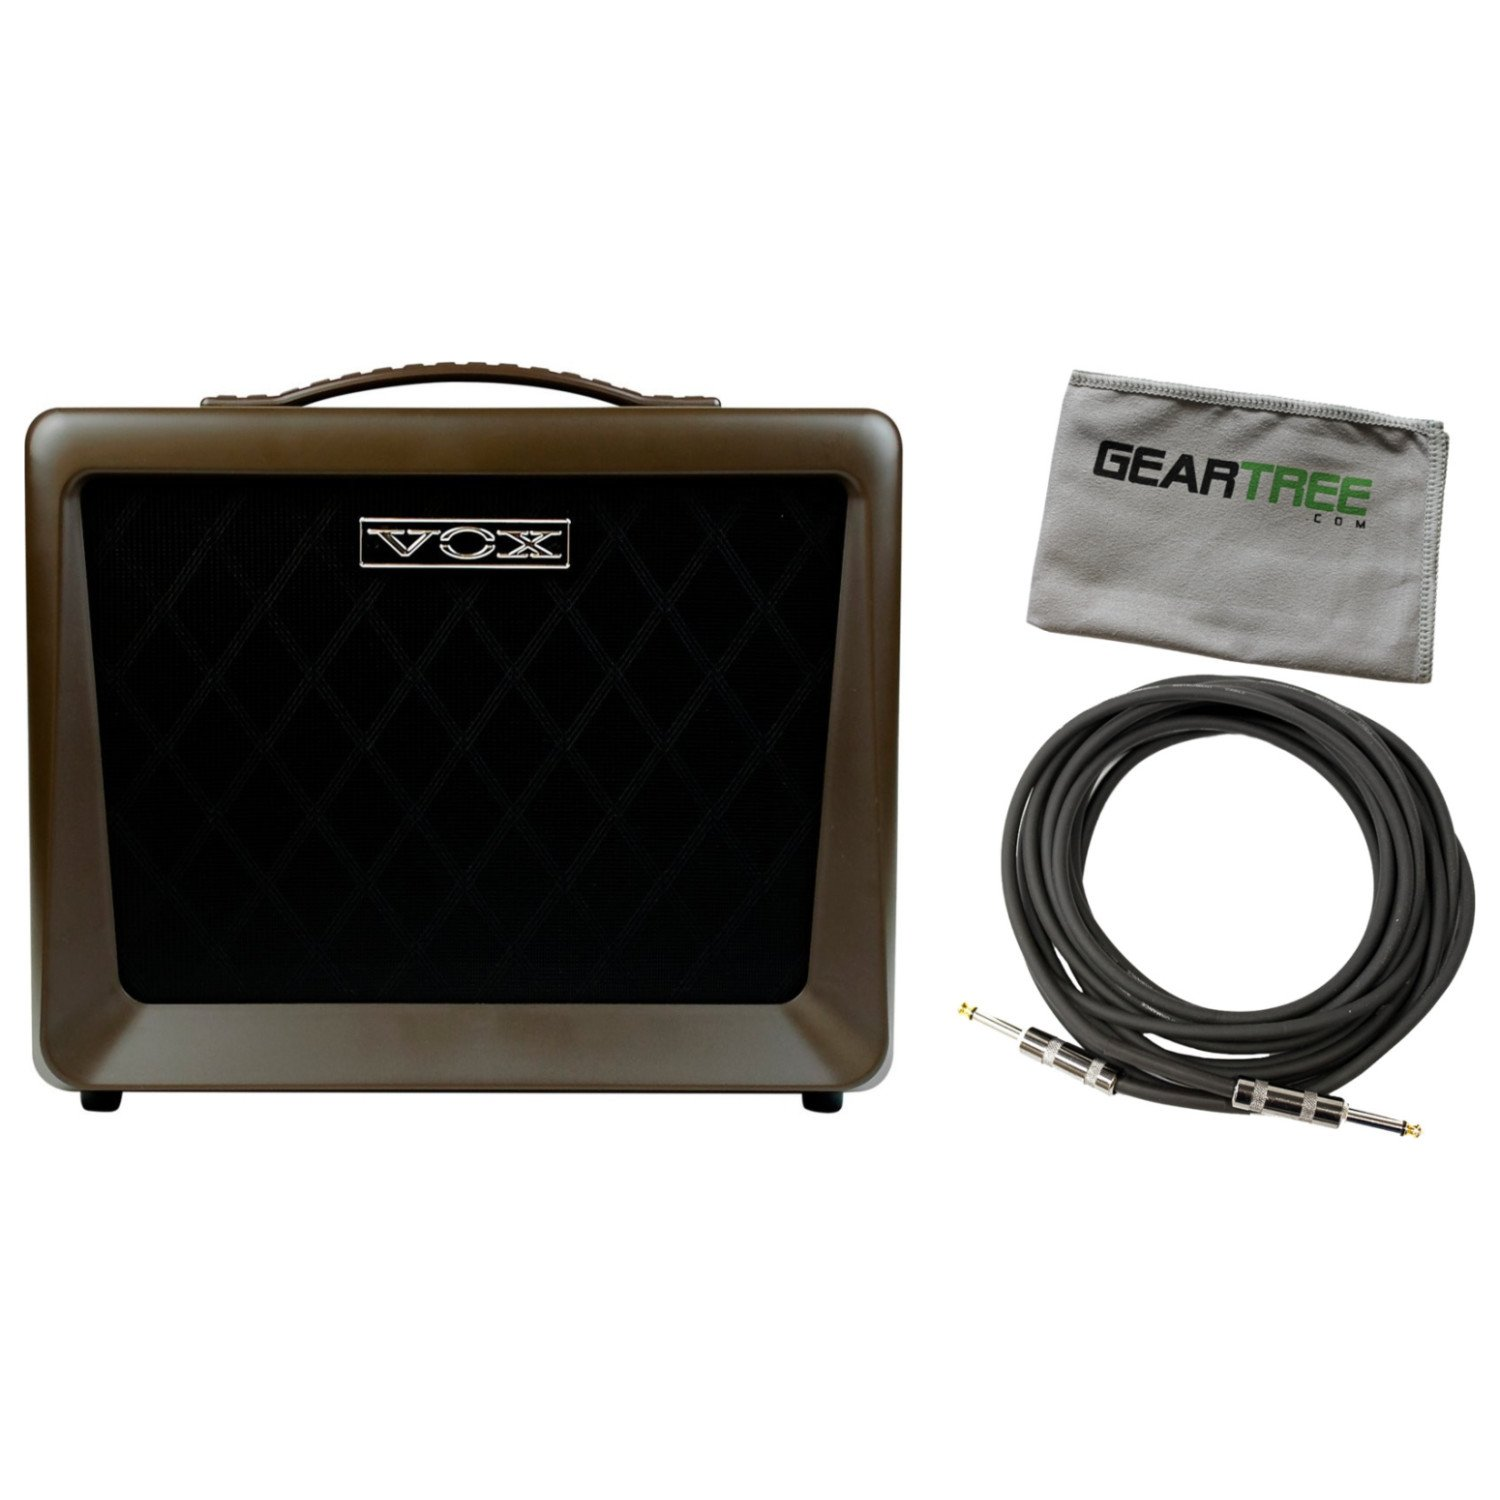 Vox VX50AG Acoustic Guitar Amplifier 50 Watts Two Channels w/ Cable and Geartree by Vox